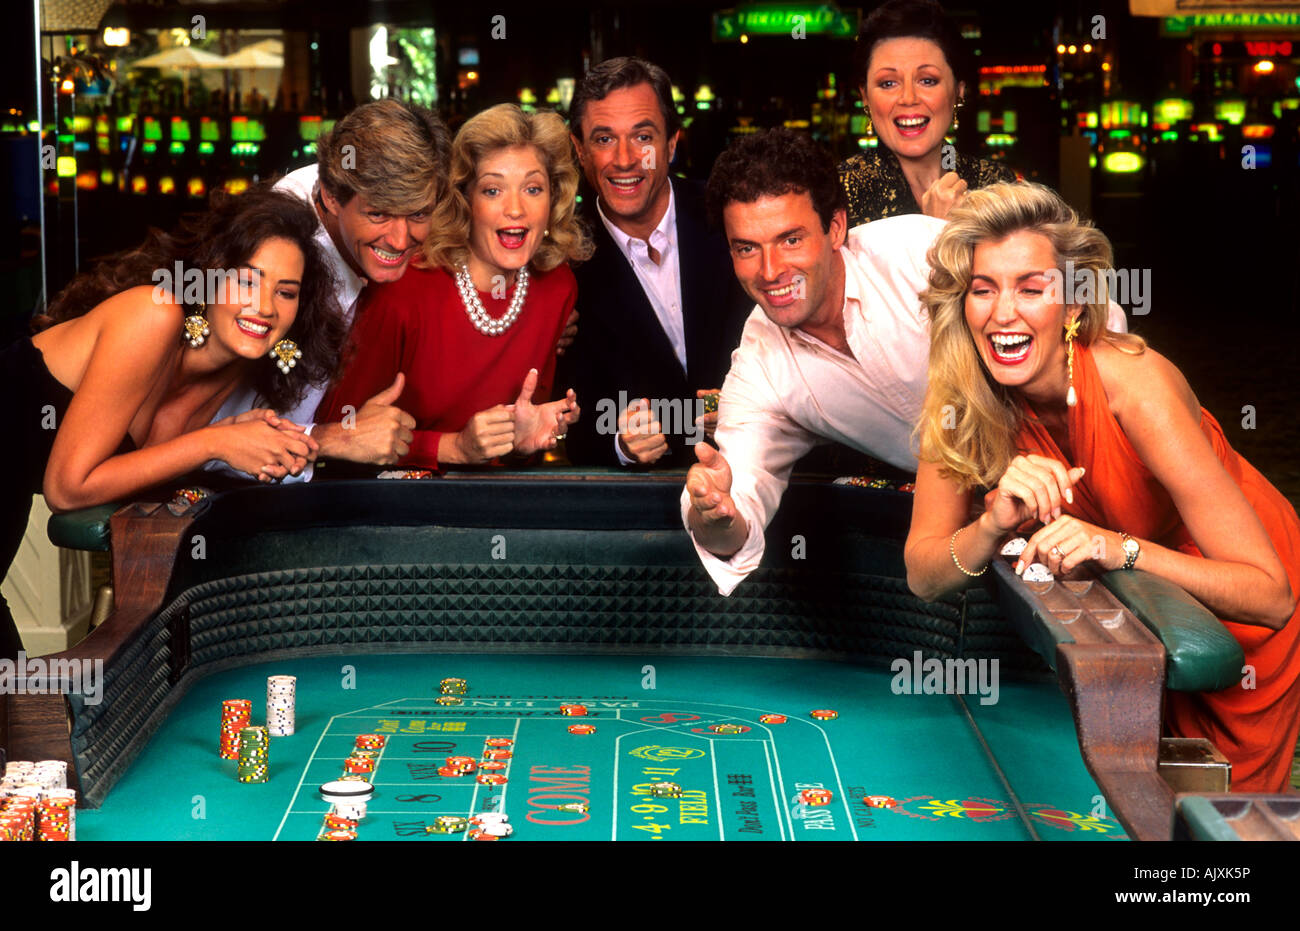 great-excitement-in-gambling-at-crap-tab